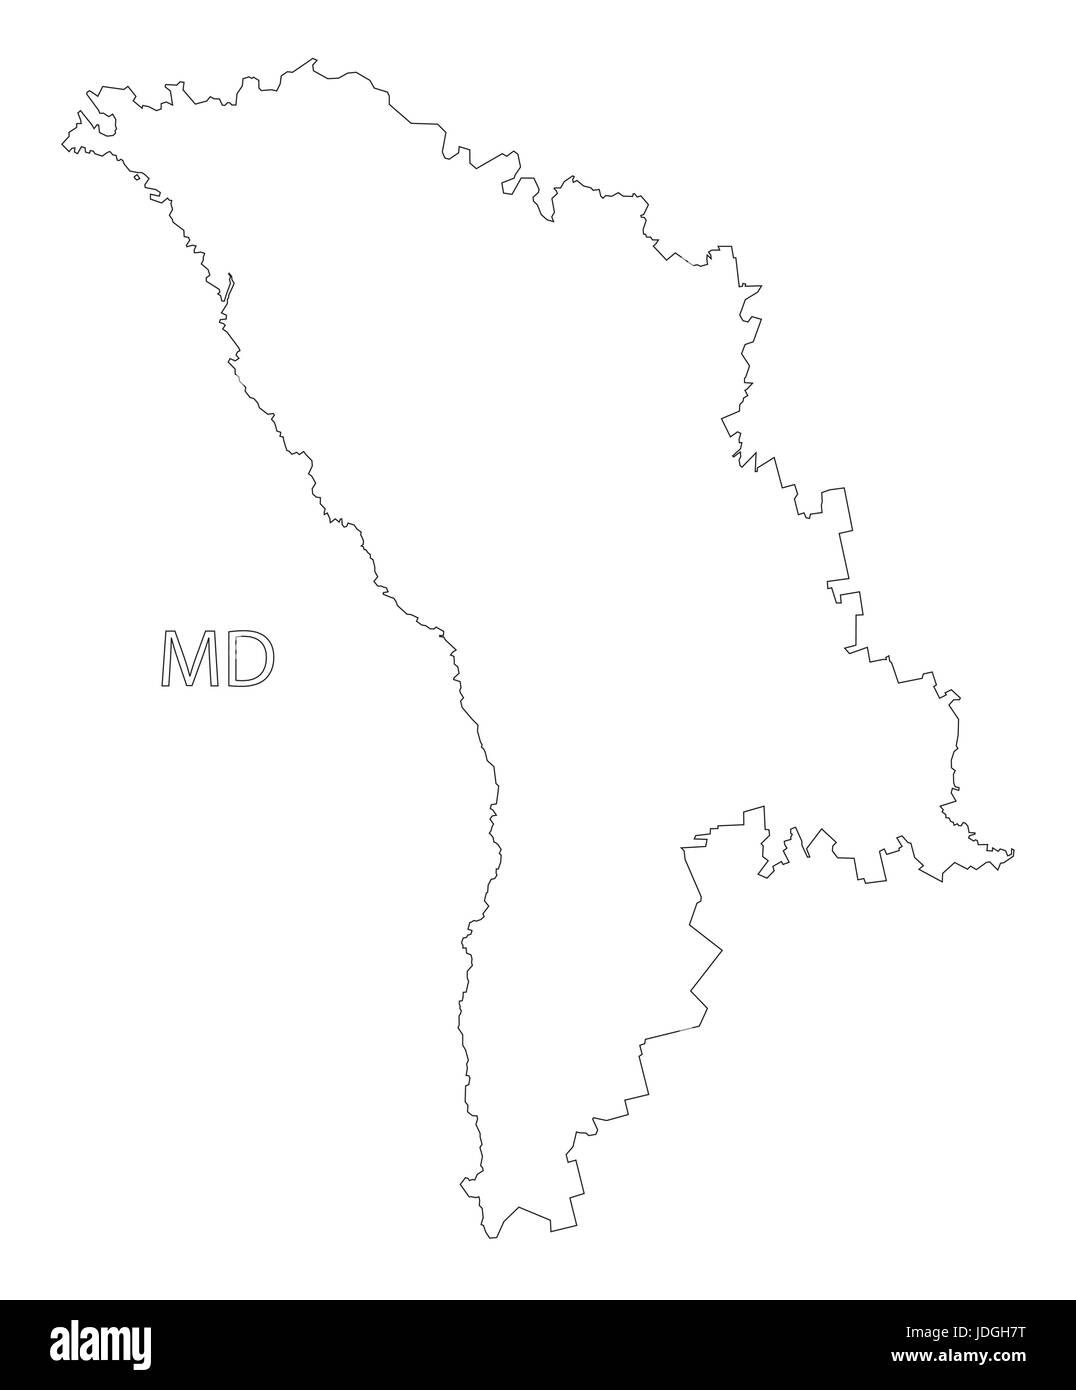 Moldova Outline Silhouette Map Illustration With Black Shape Stock - Moldova map vector